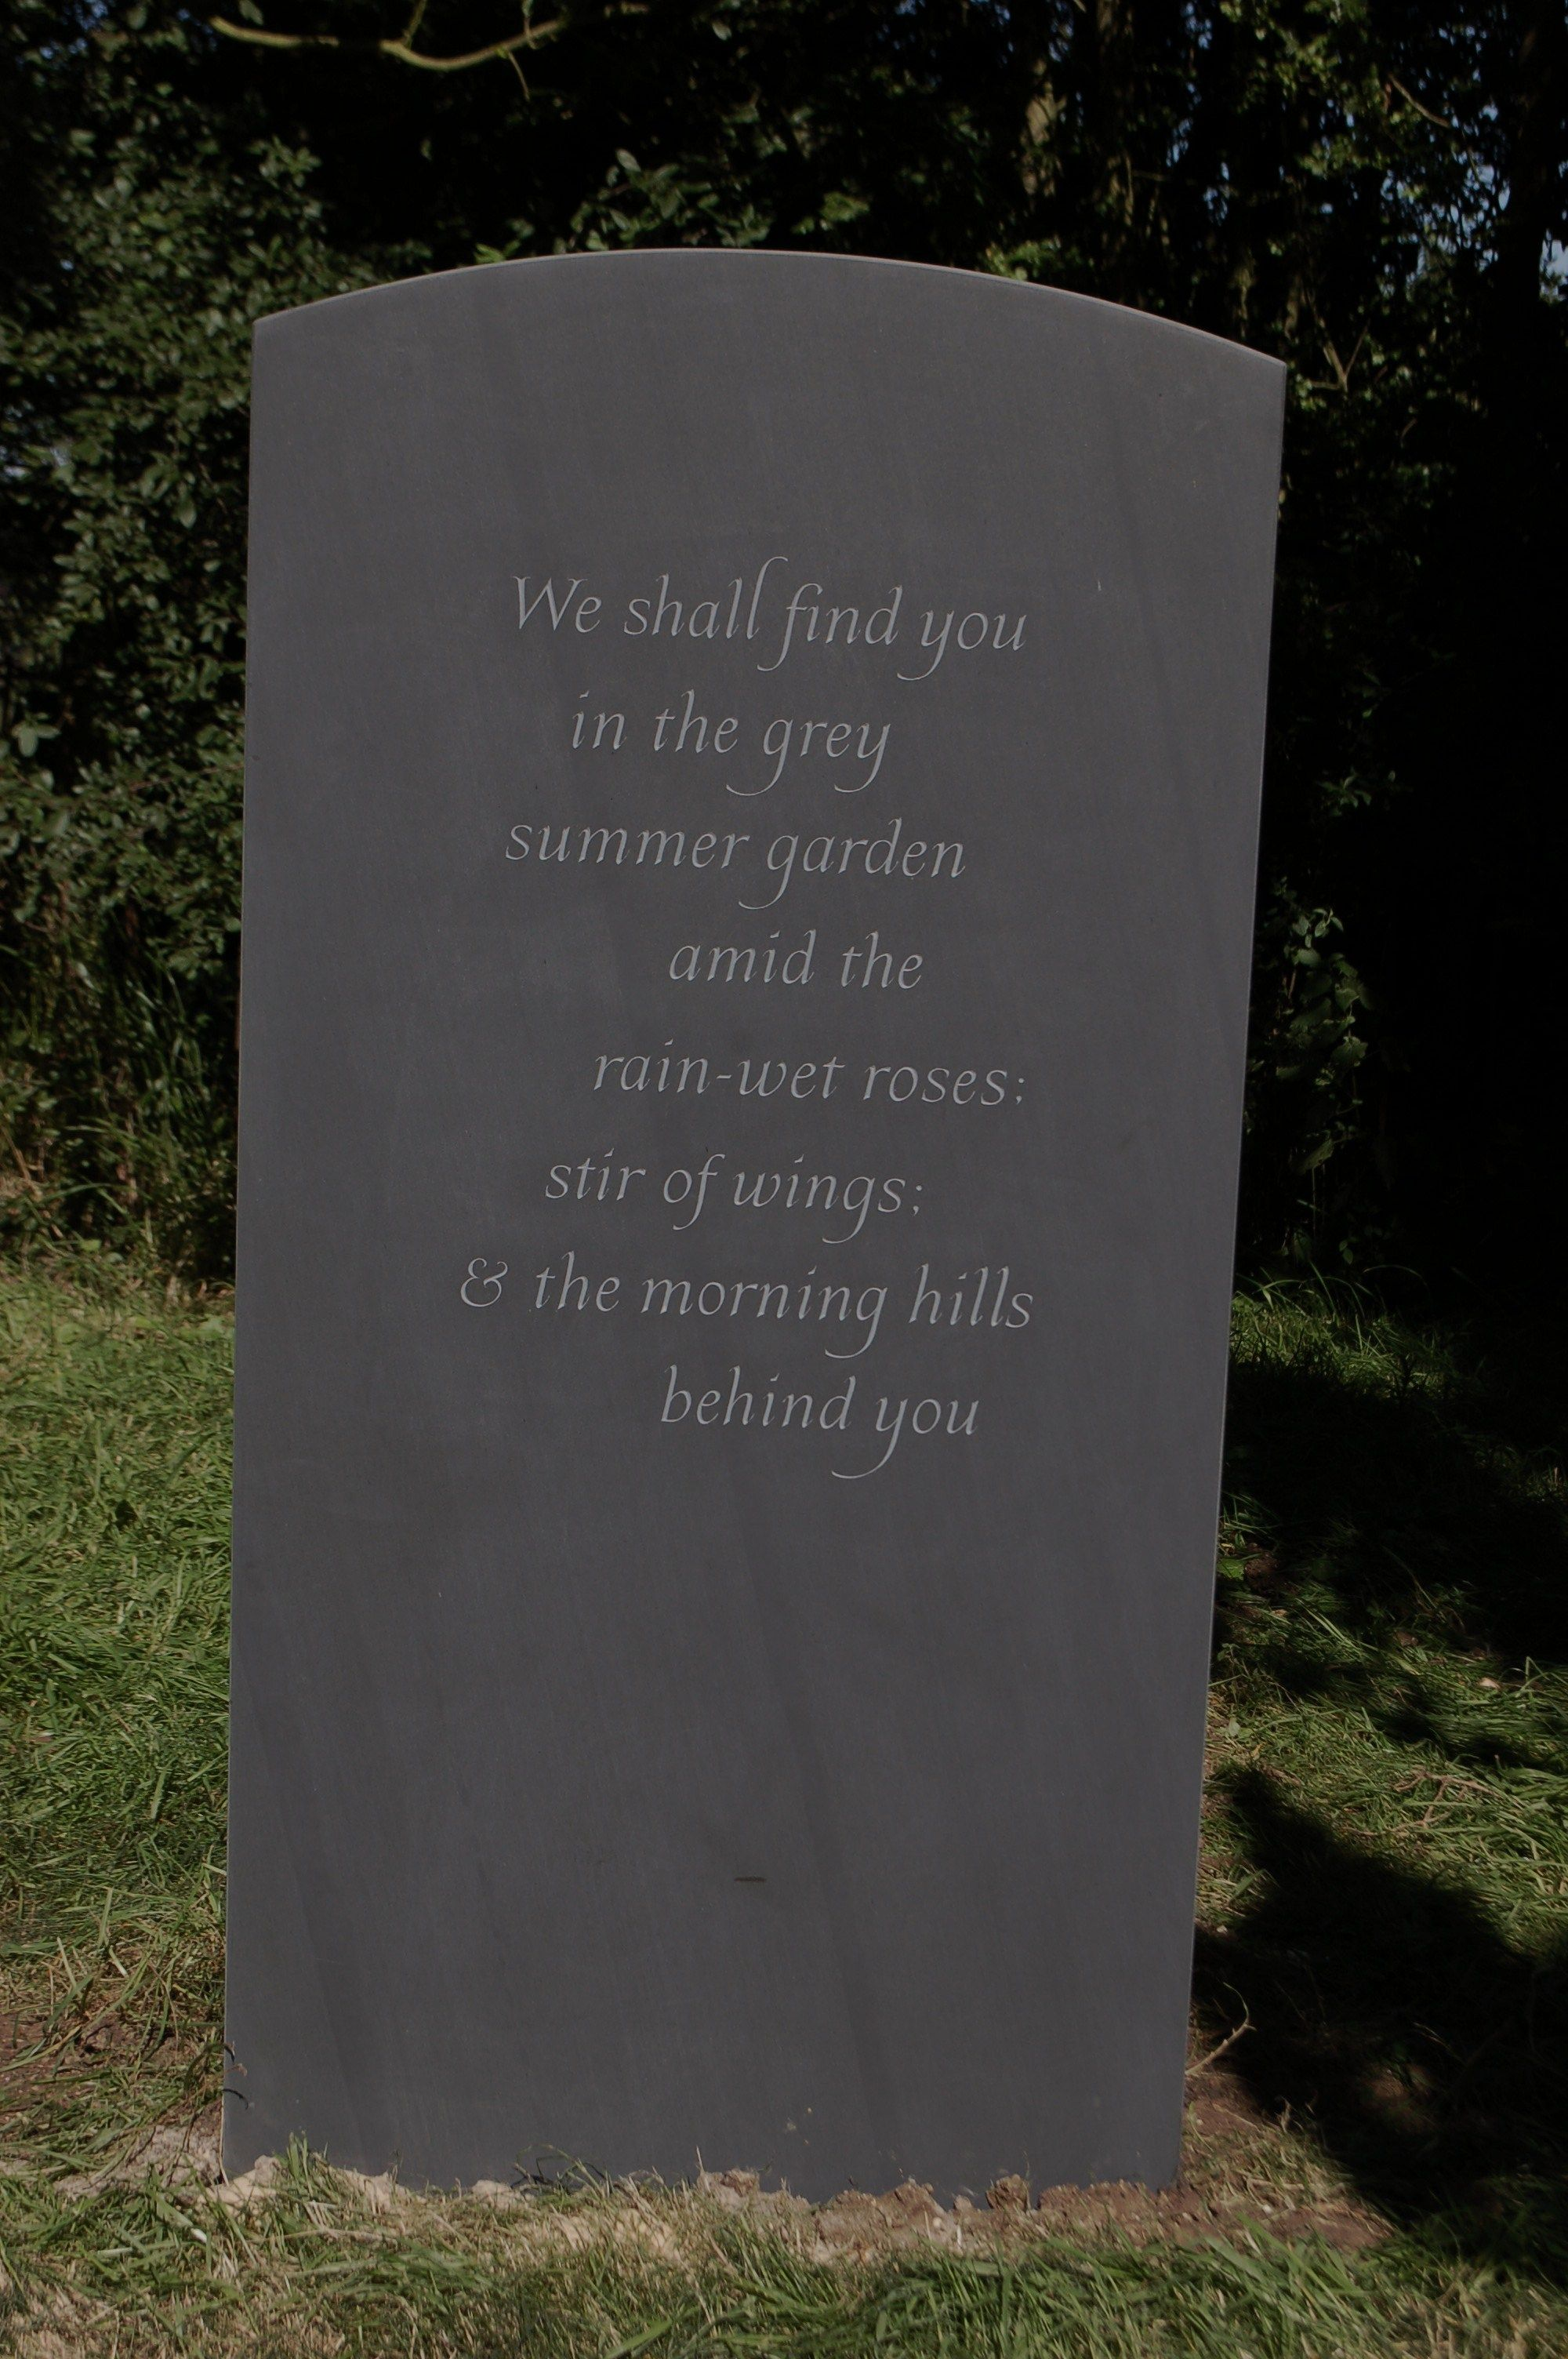 Tasteful Memorial Quotes and Headstone Epitaphs | Blog ...